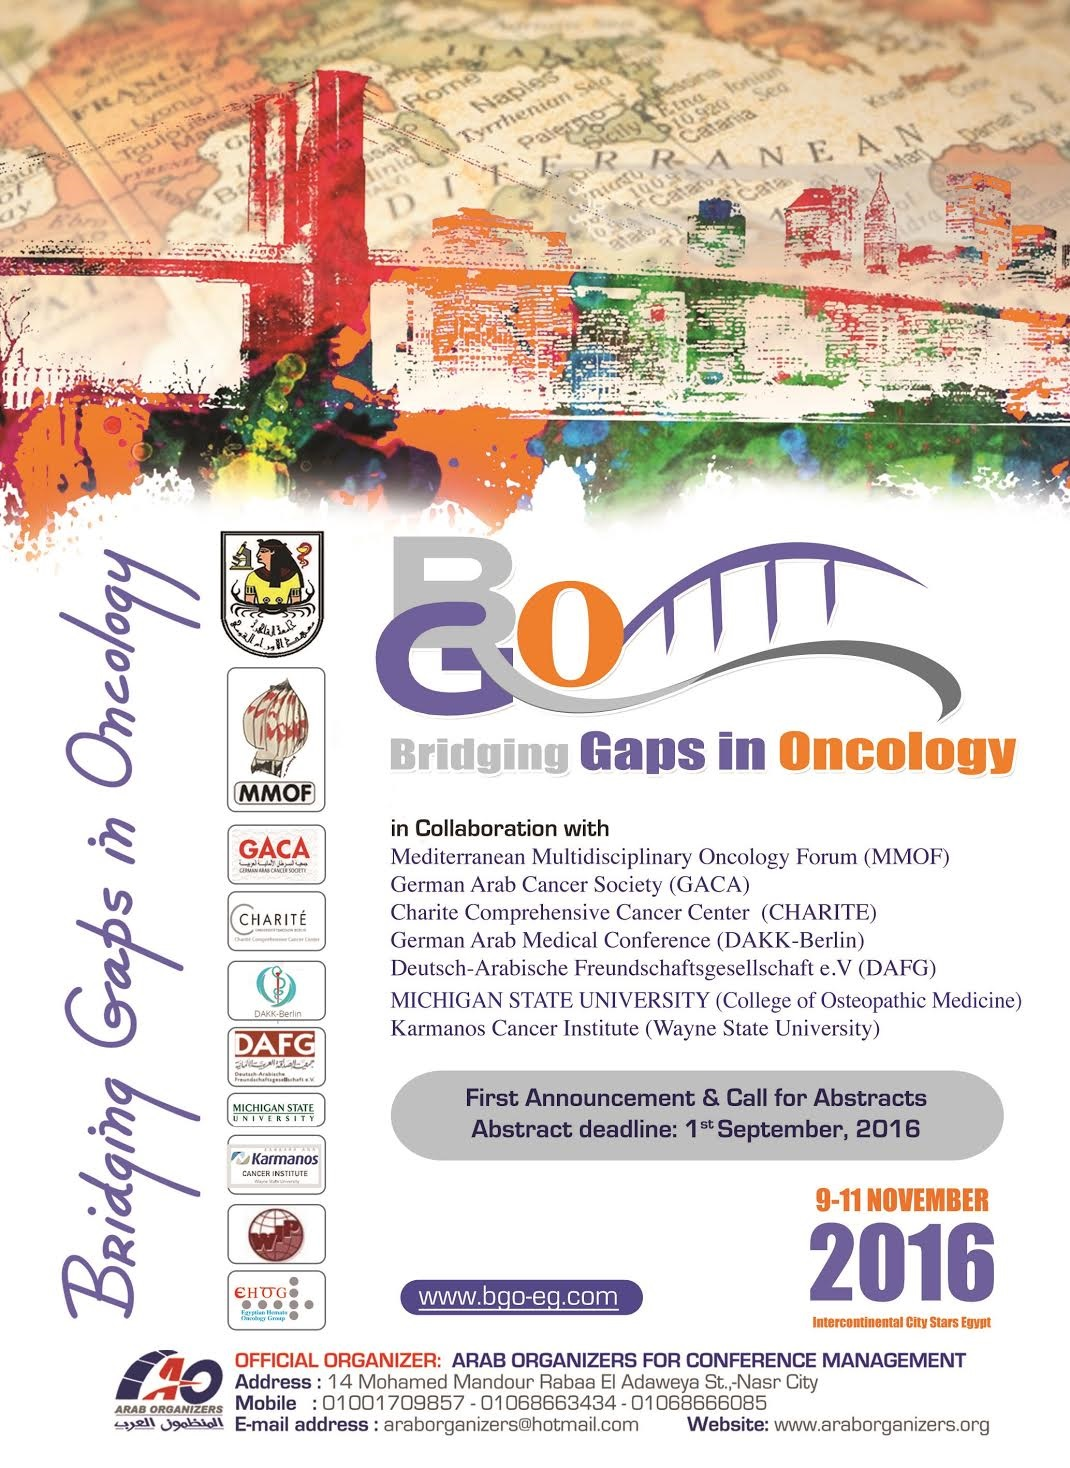 Bridging Gaps in Oncology